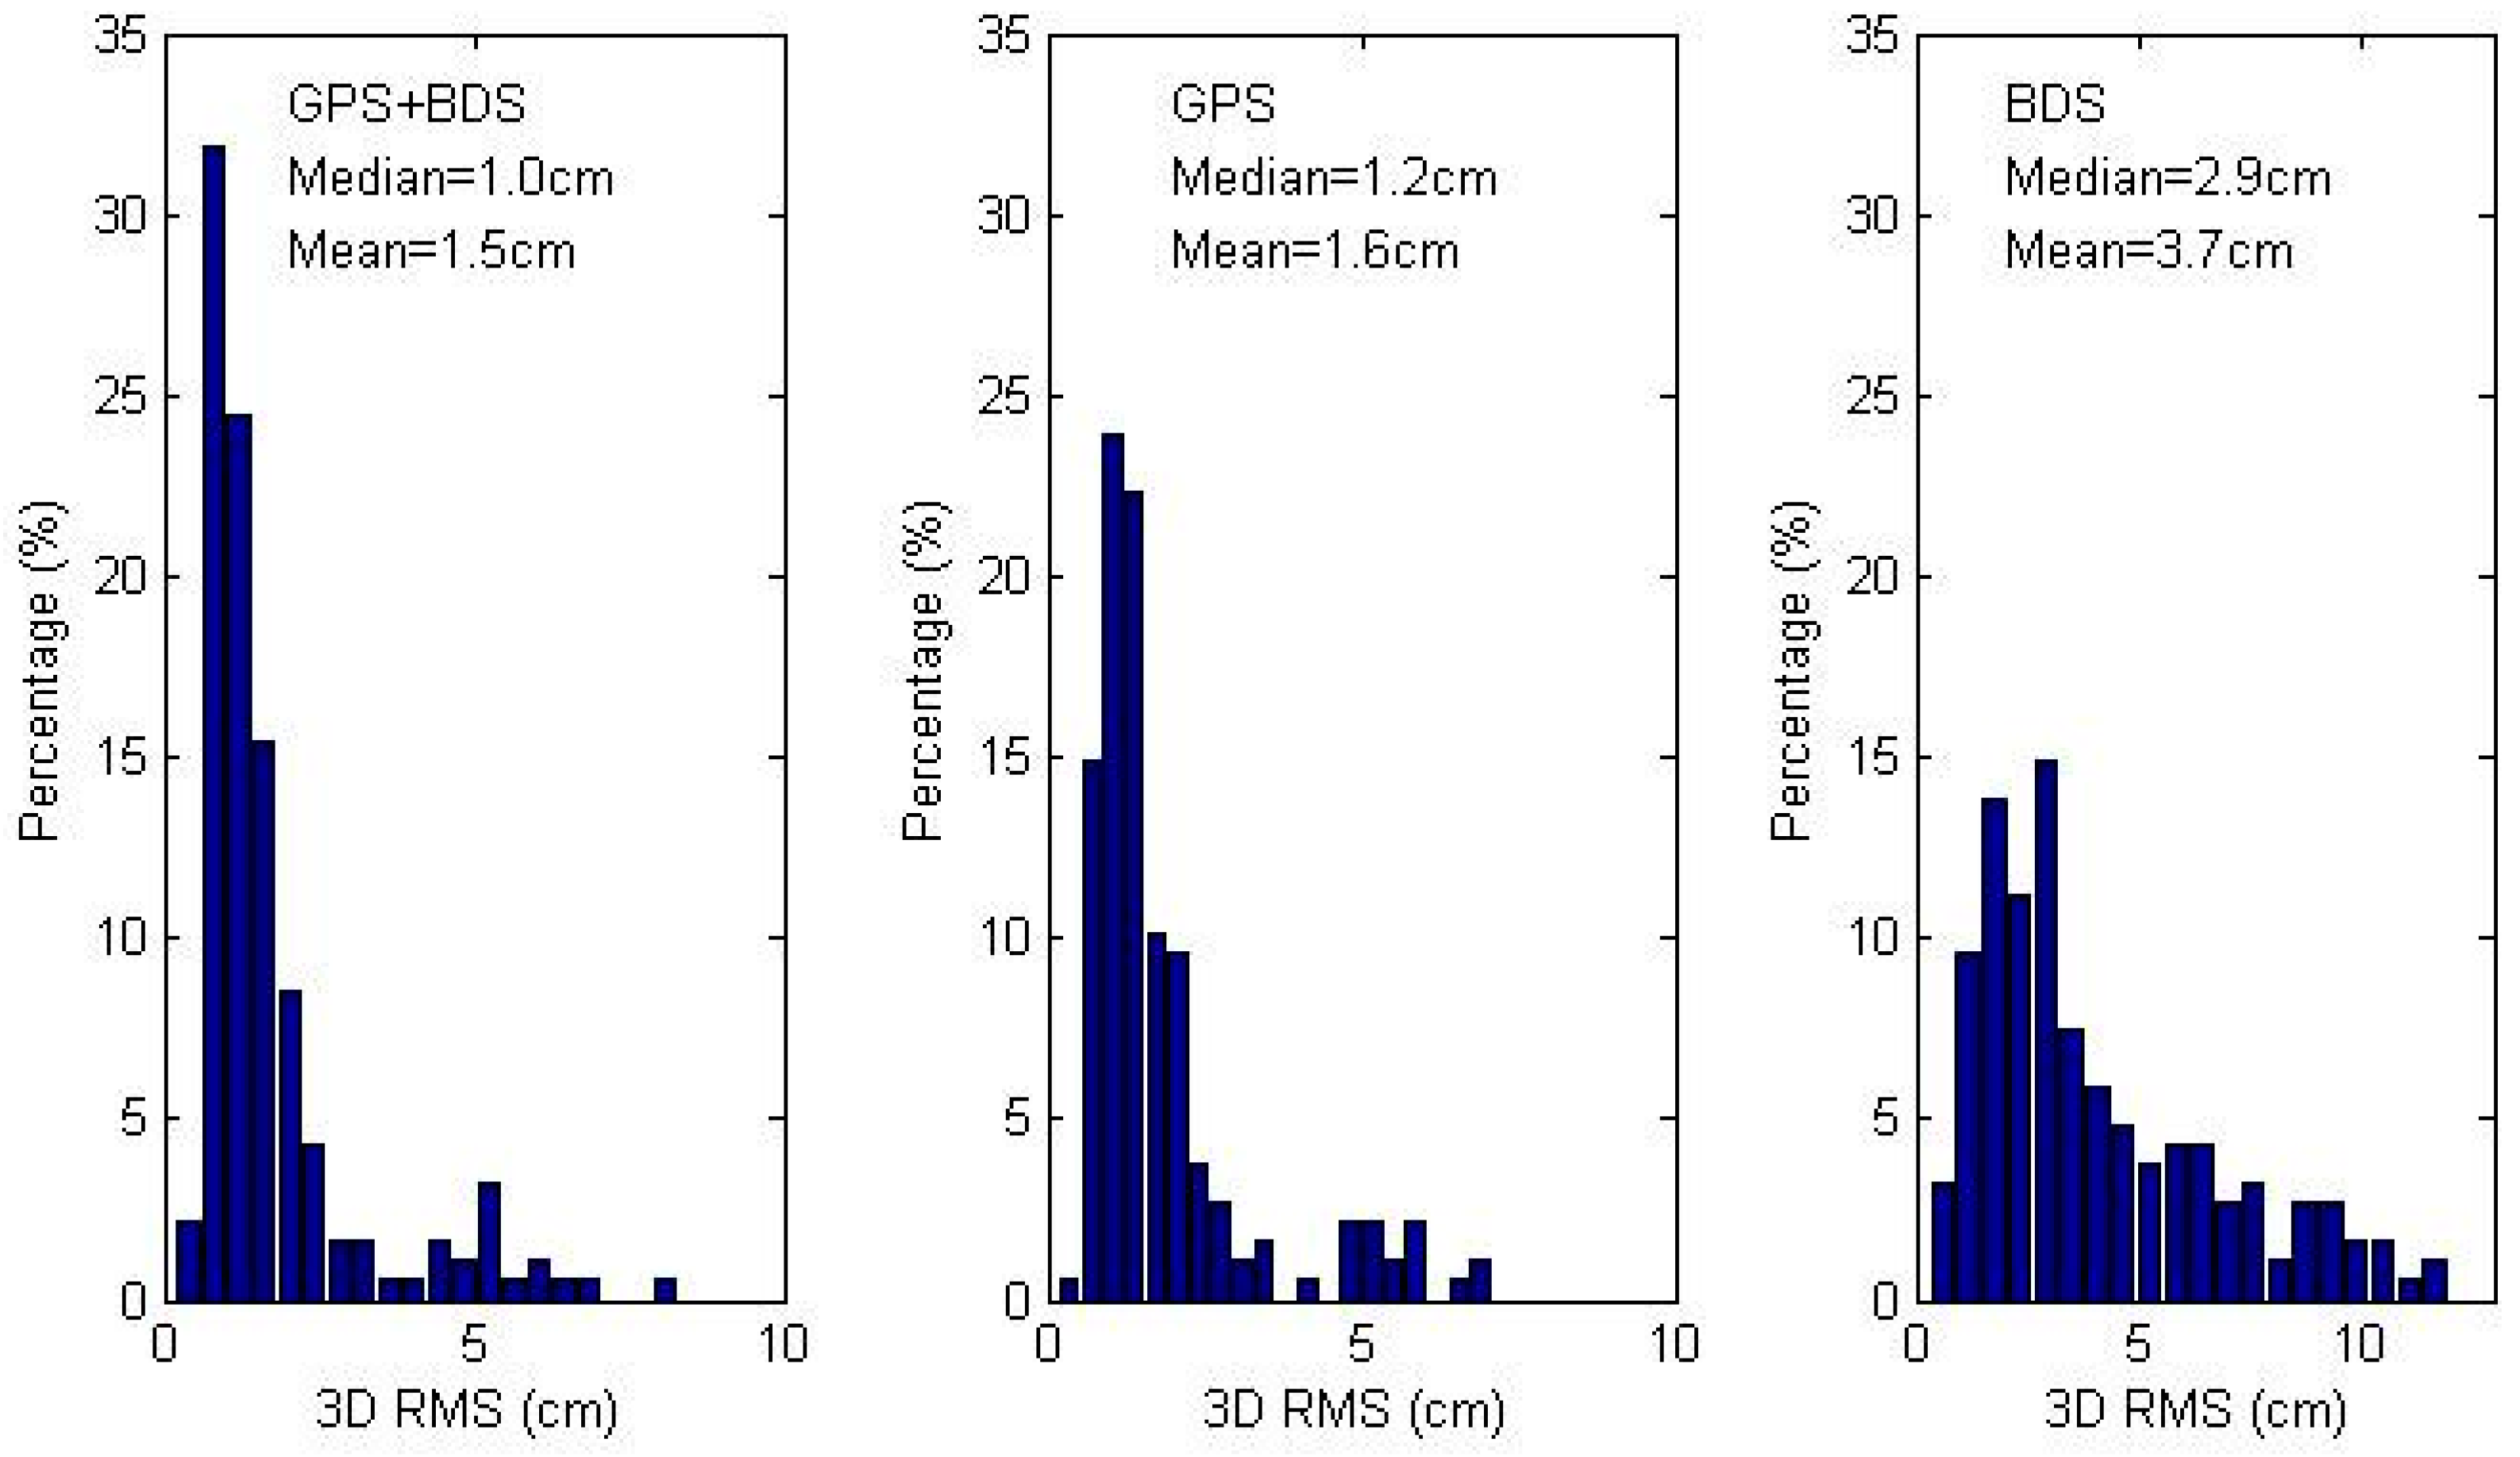 Sensors | Free Full-Text | Modeling and Assessment of GPS